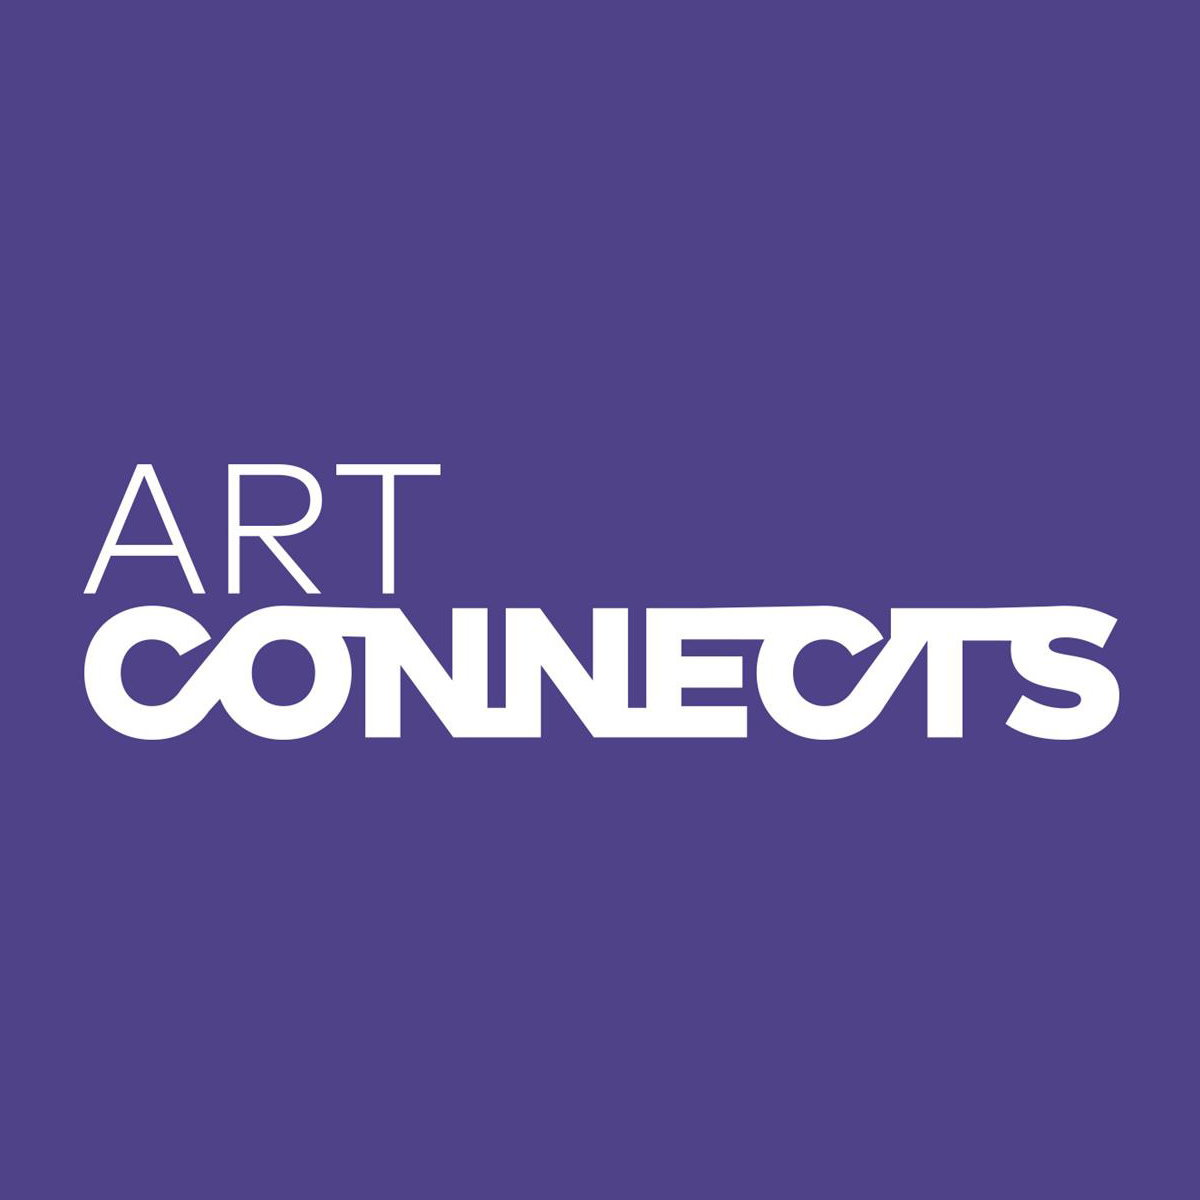 Vancouver Art Gallery Launches Art Connects Series